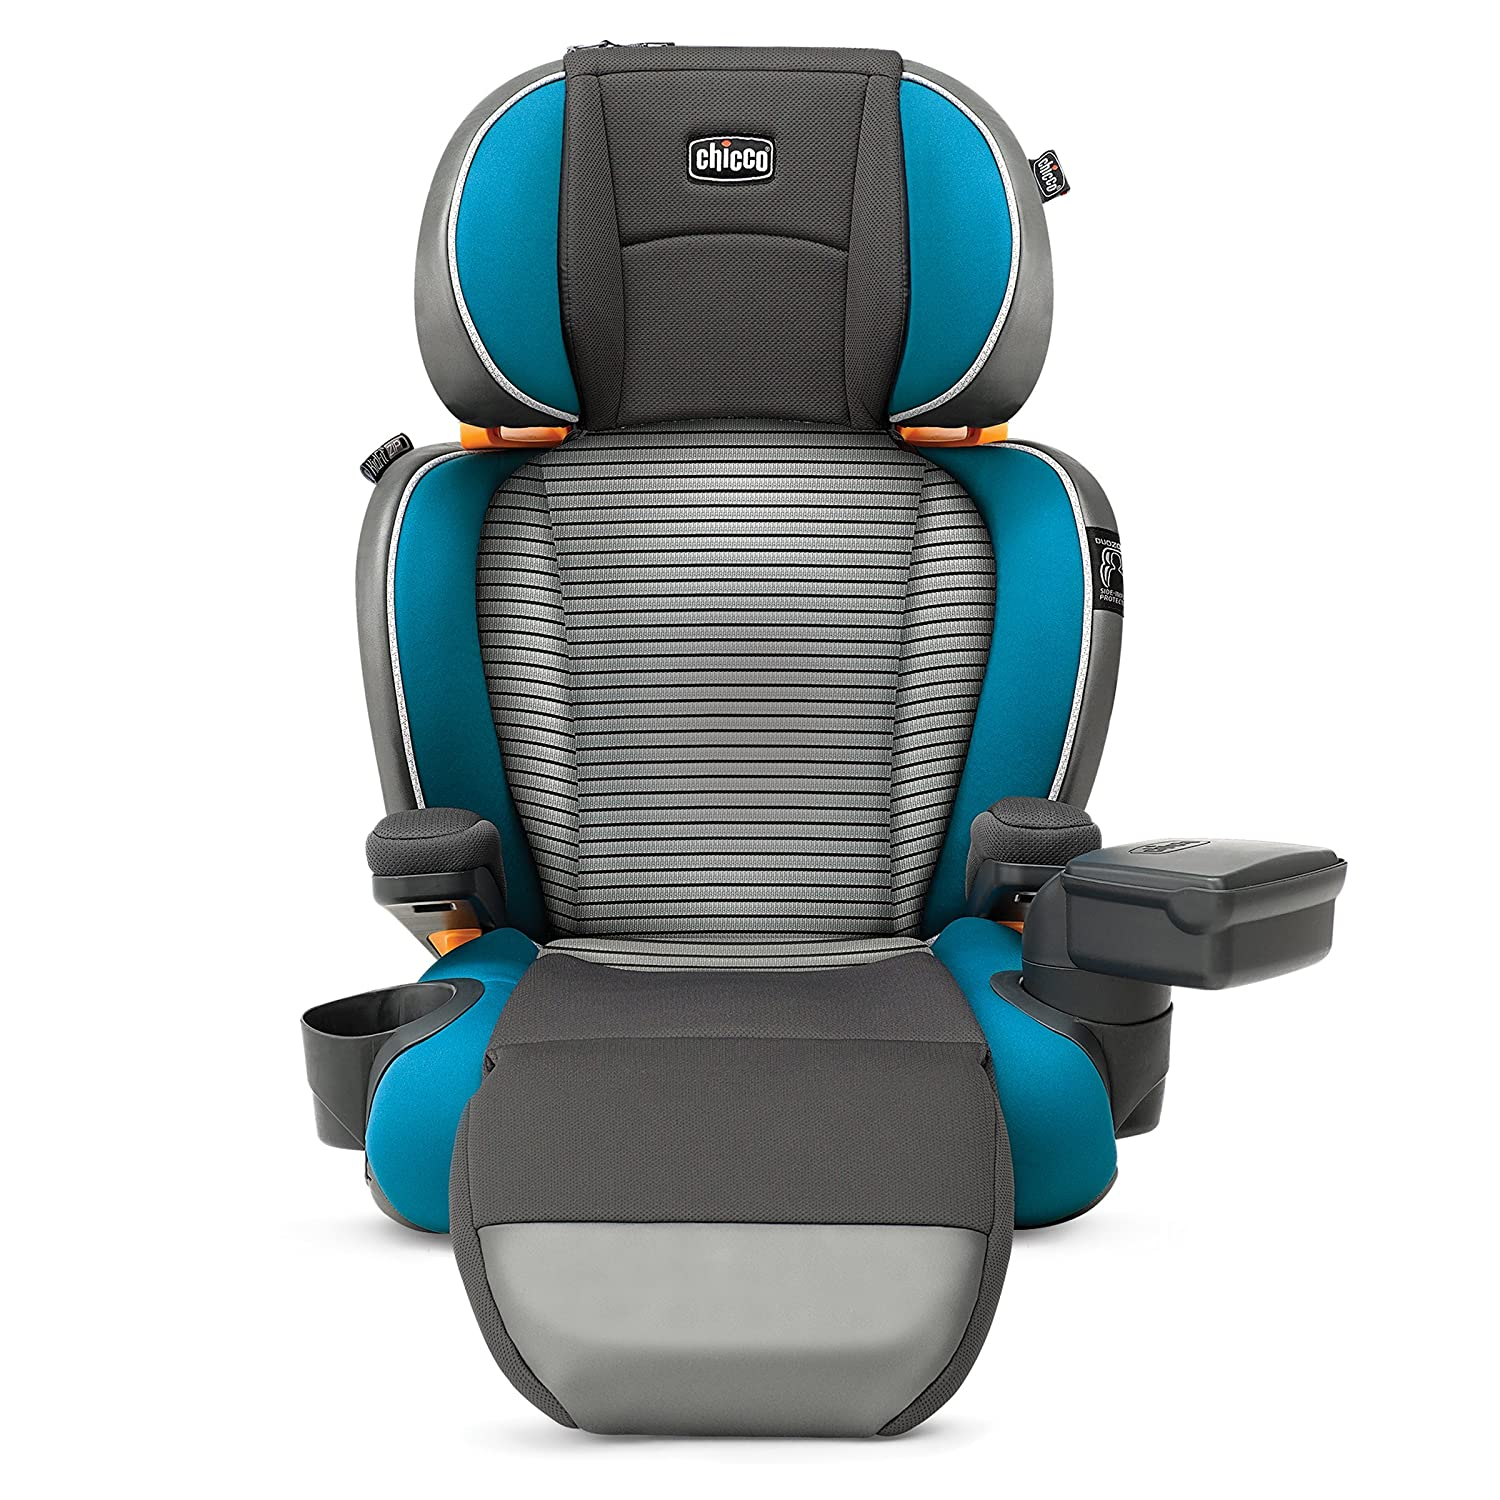 Amazon.com : Chicco KidFit Zip Air 2-in-1 Belt Positioning Booster Car Seat - Q Collection : Baby